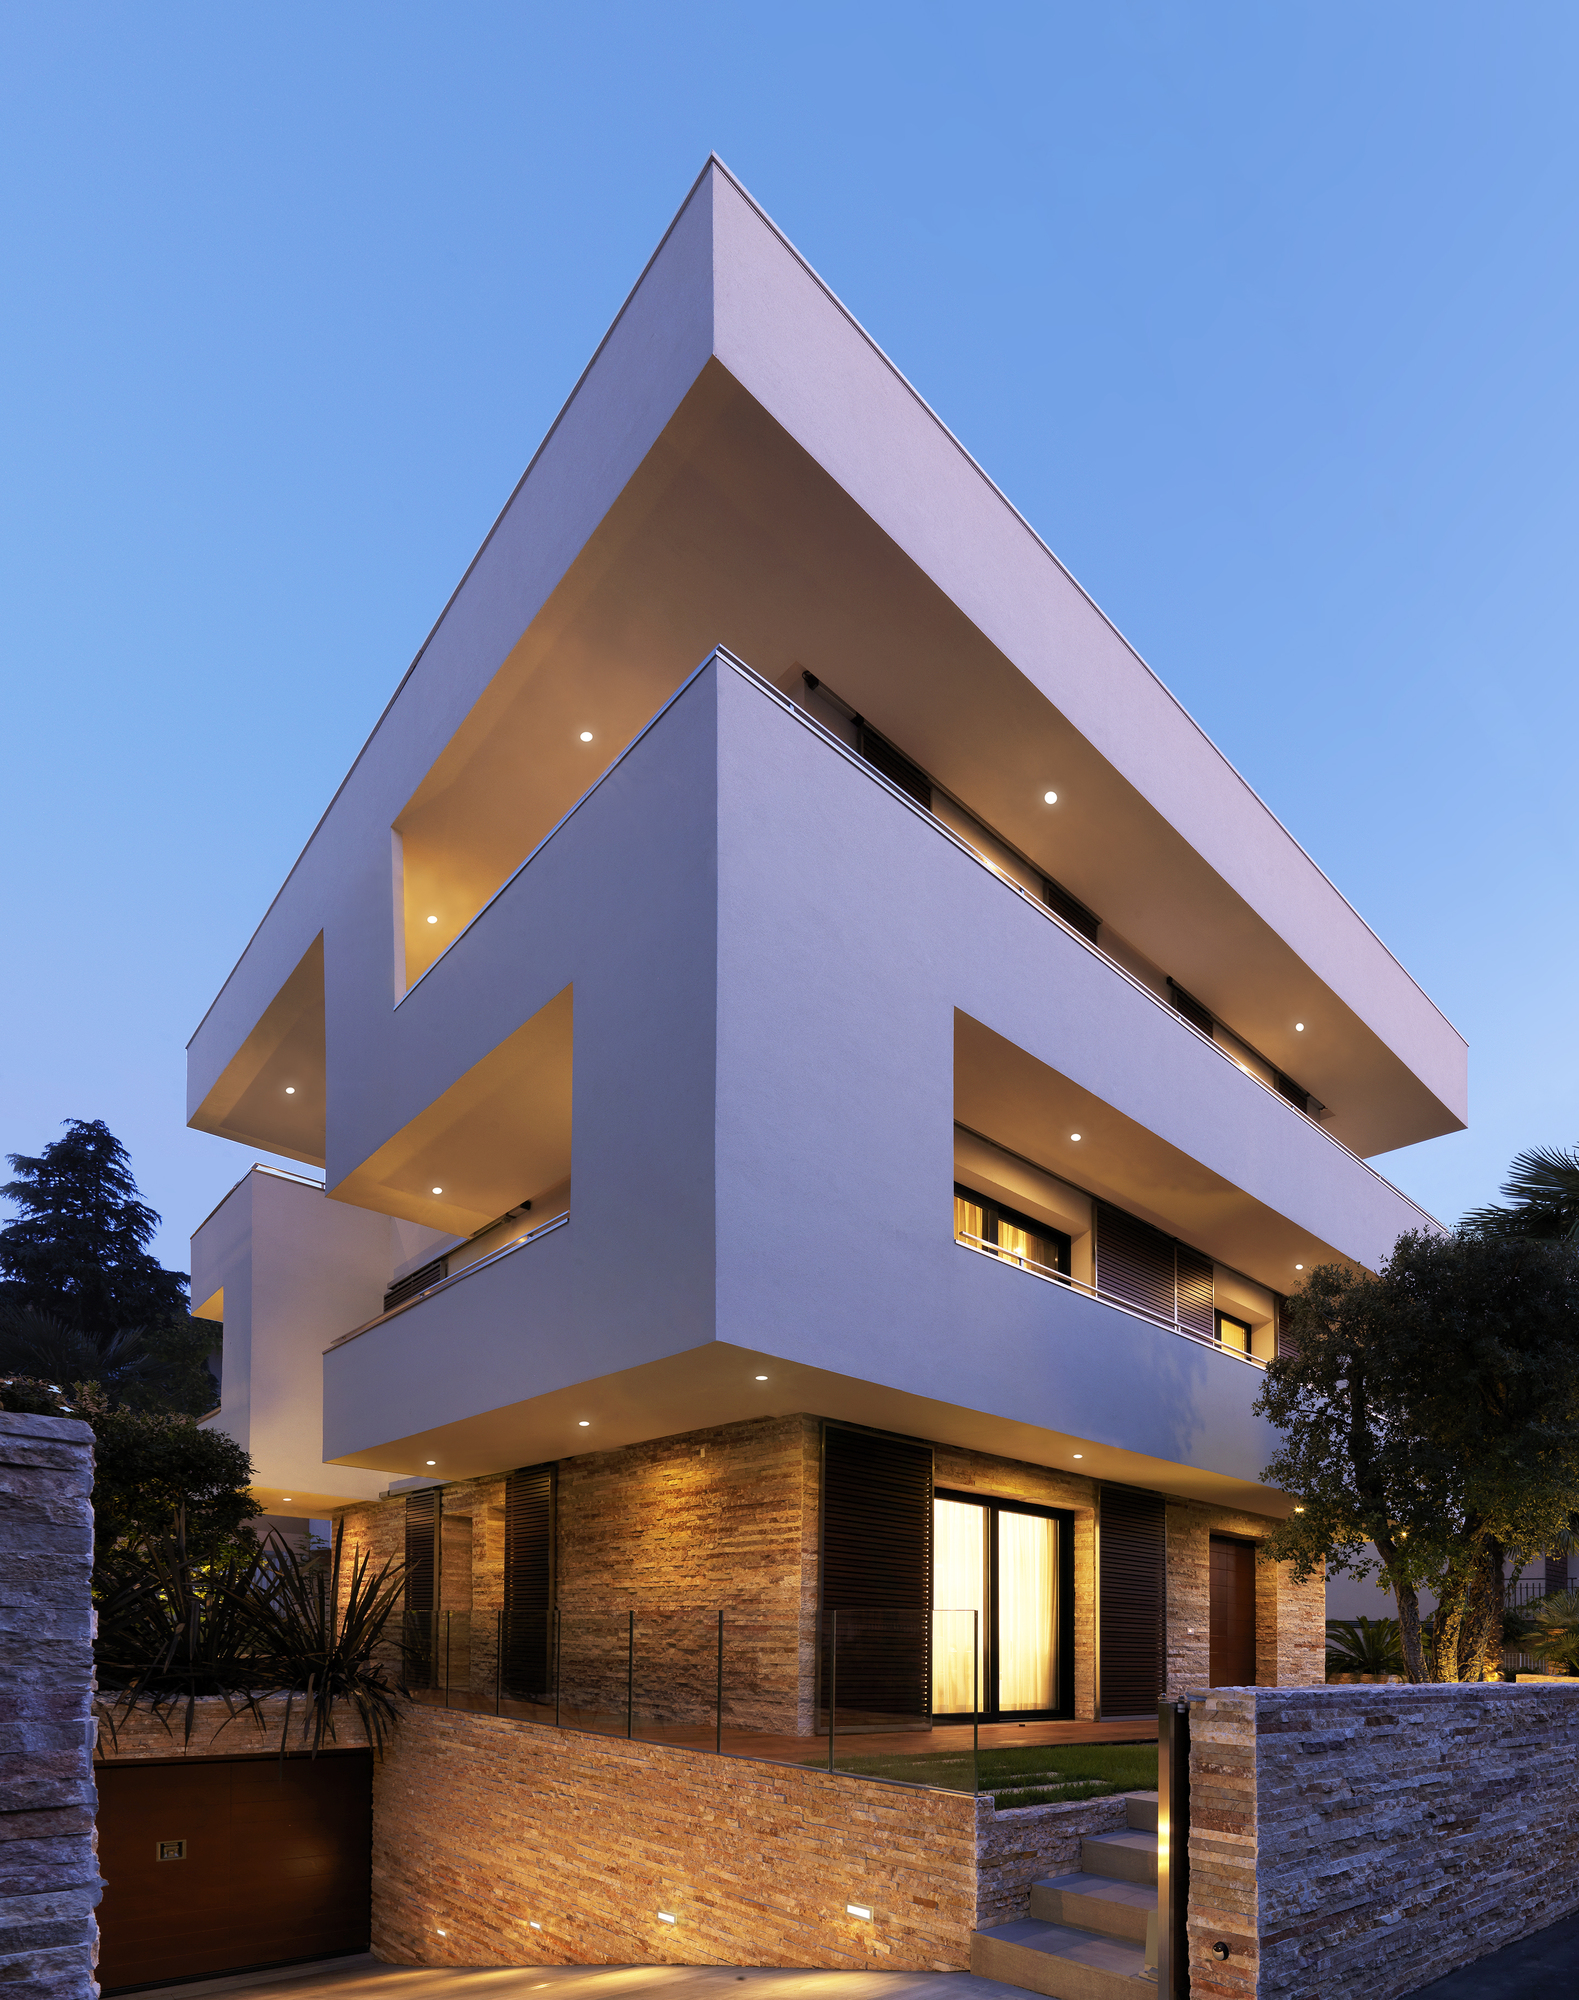 Conceptual design and playful geometry the rgr house in italy